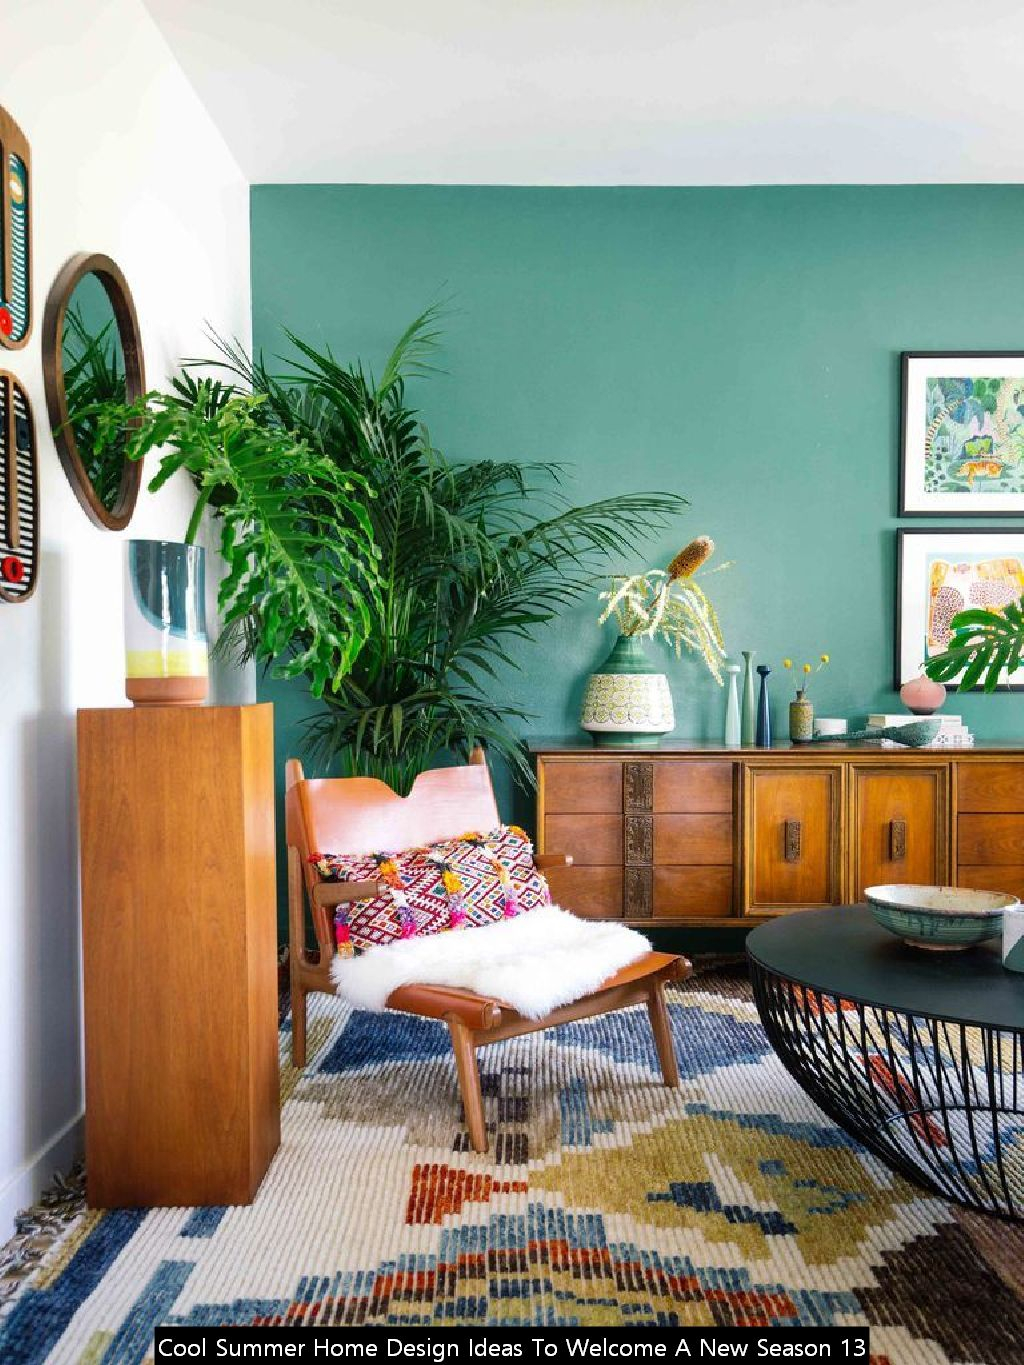 Cool Summer Home Design Ideas To Welcome A New Season 13